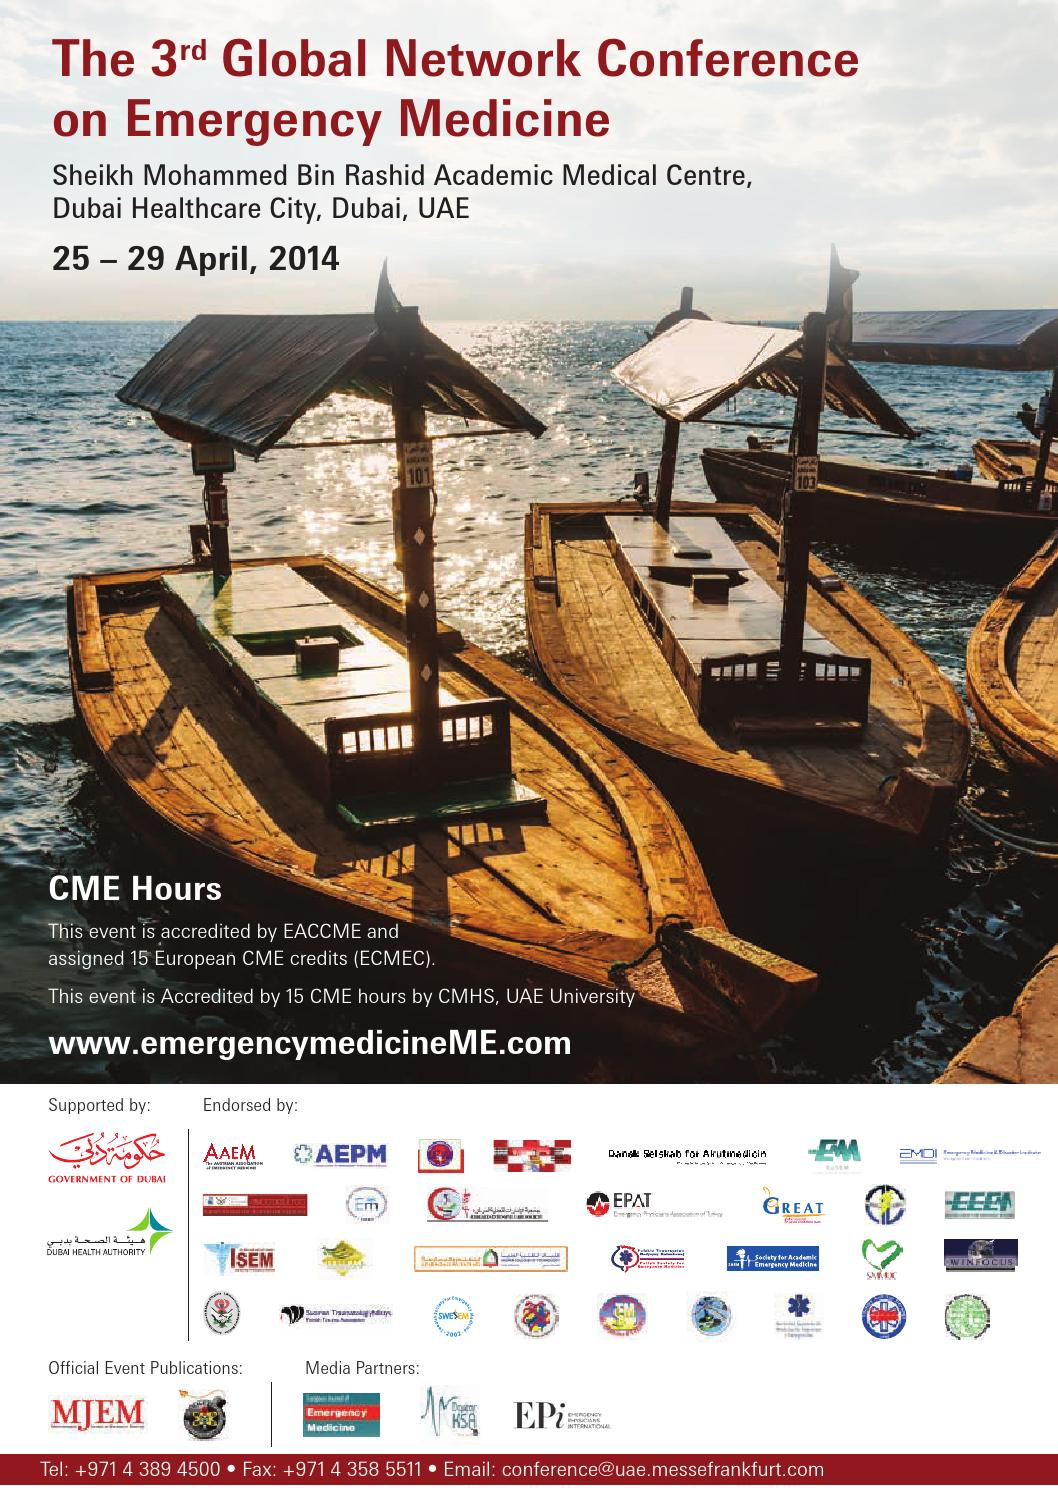 Global Network conference on Emergency Medicine programme by